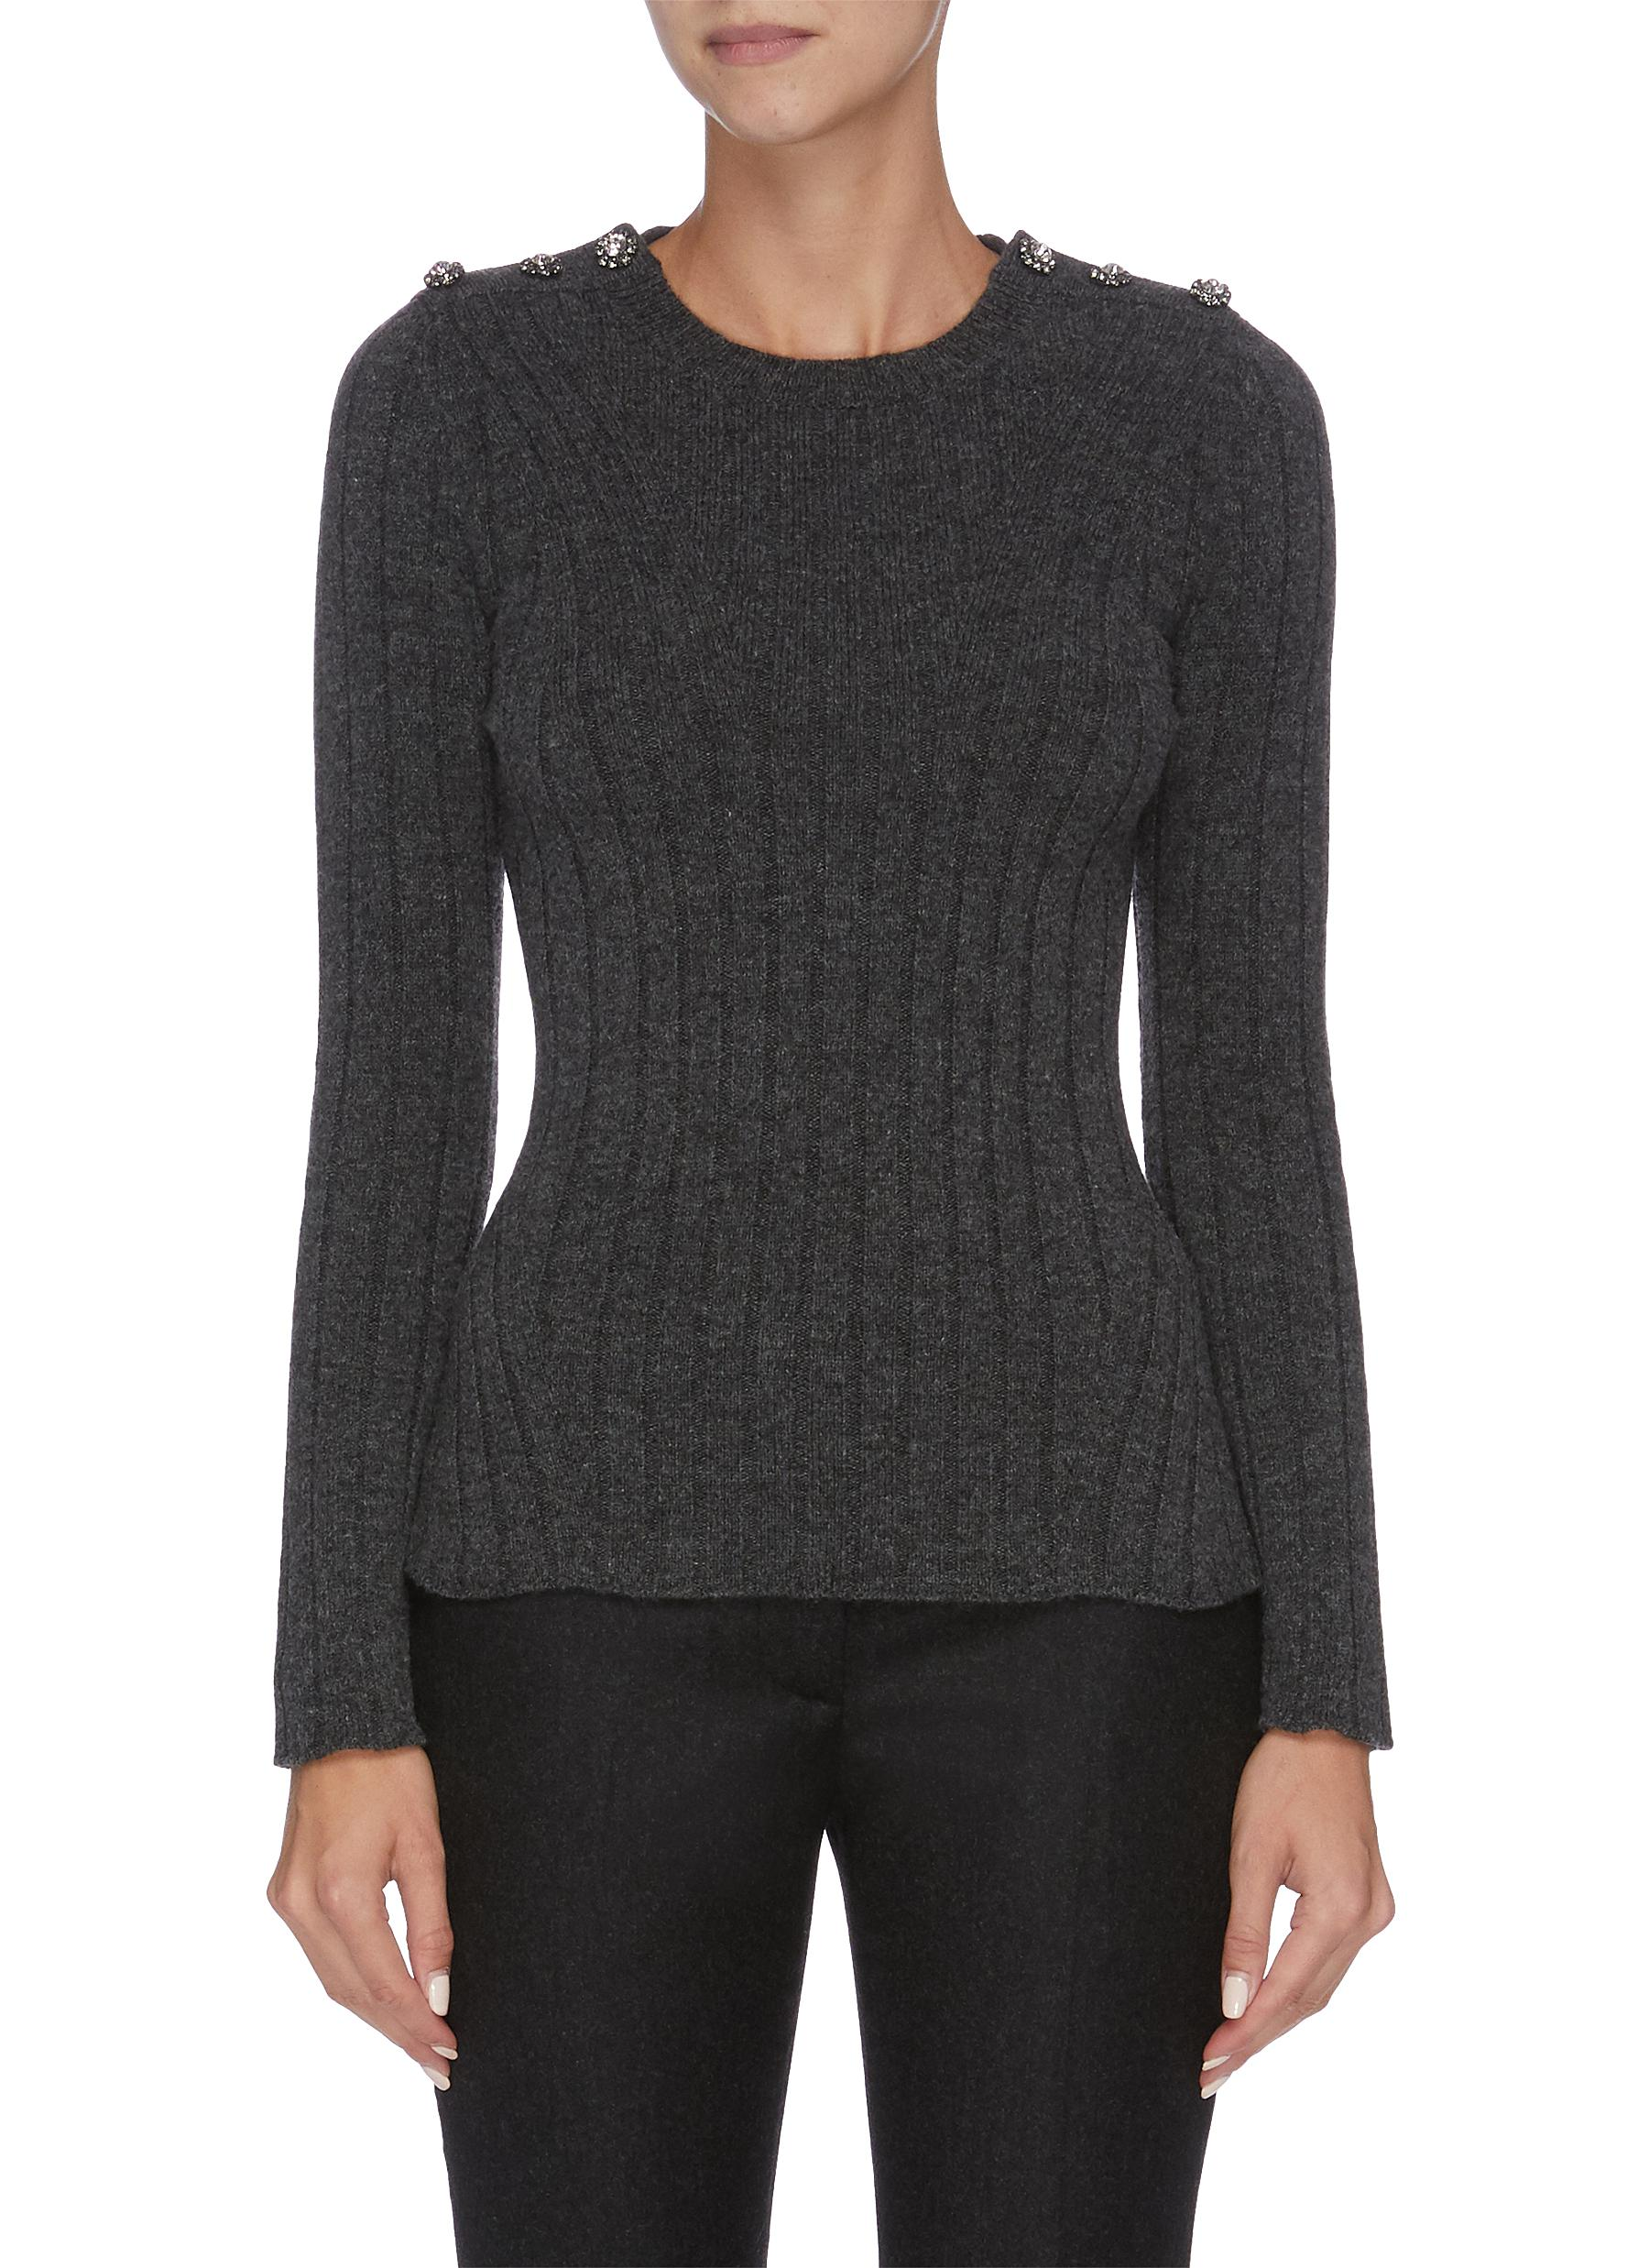 Embelished shoulder knit top by Alexander Mcqueen